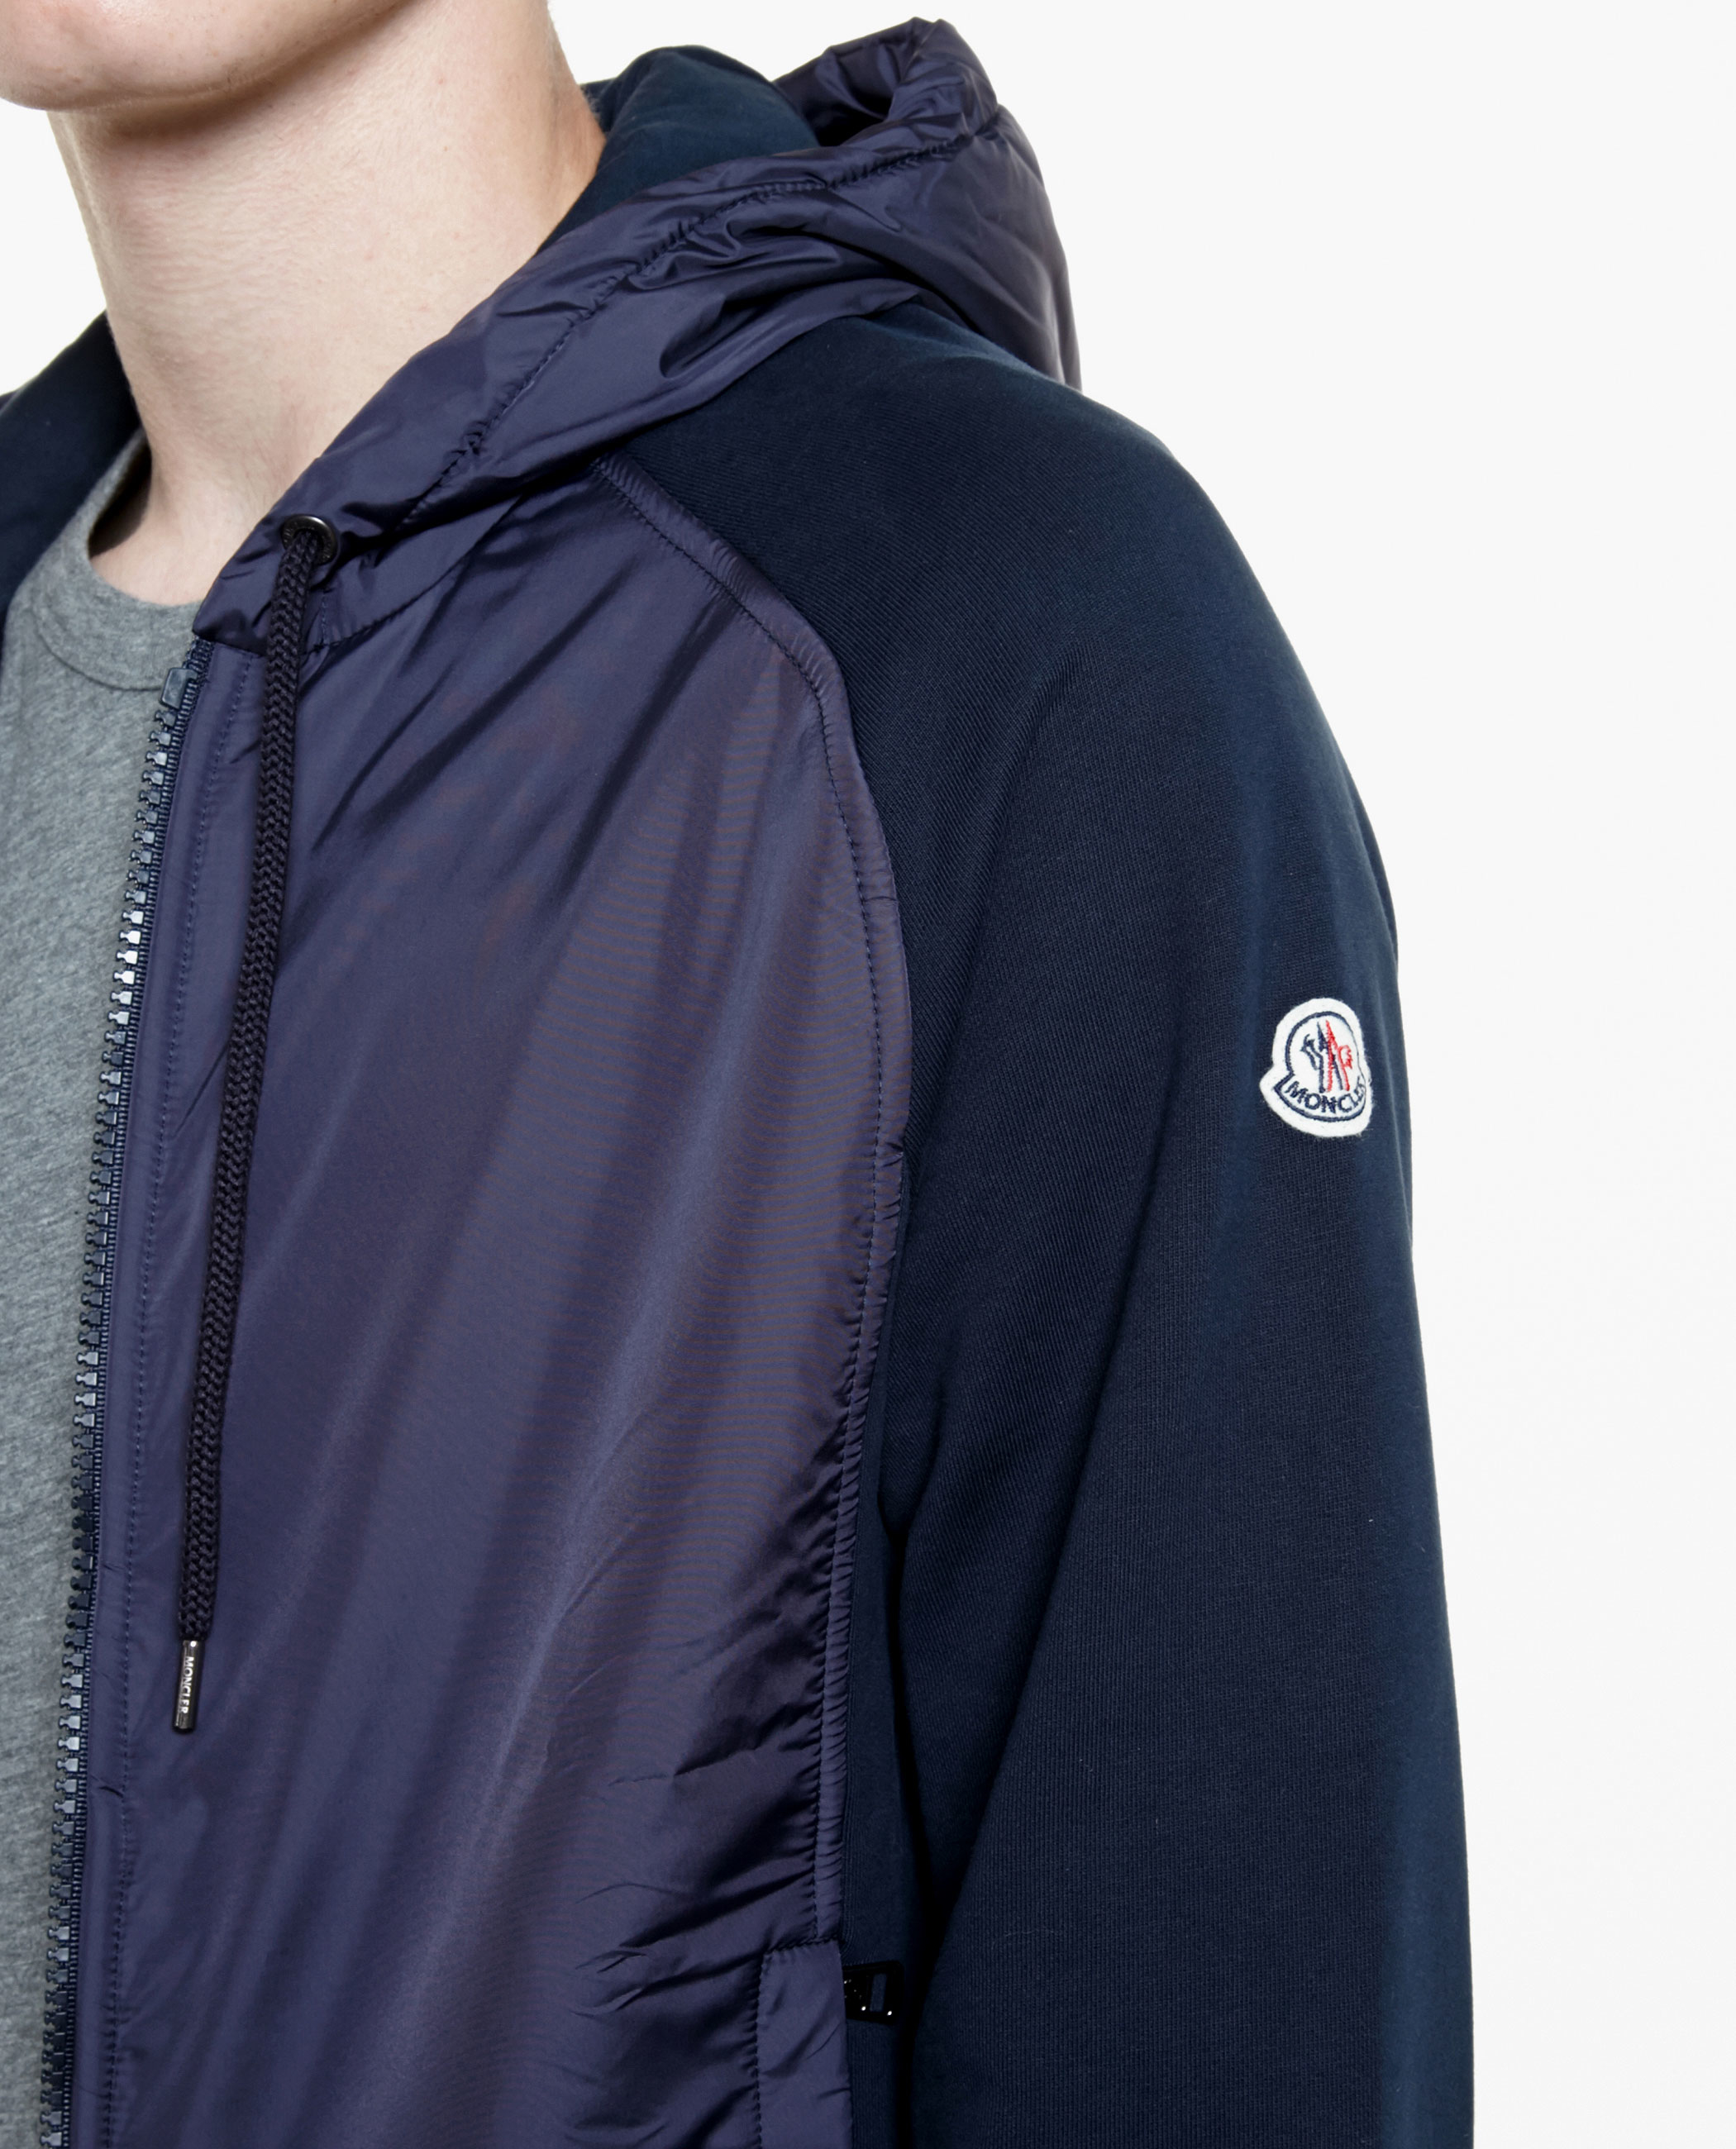 Lyst - Moncler Maglia Hooded Jacket in Blue for Men a6b5a7165